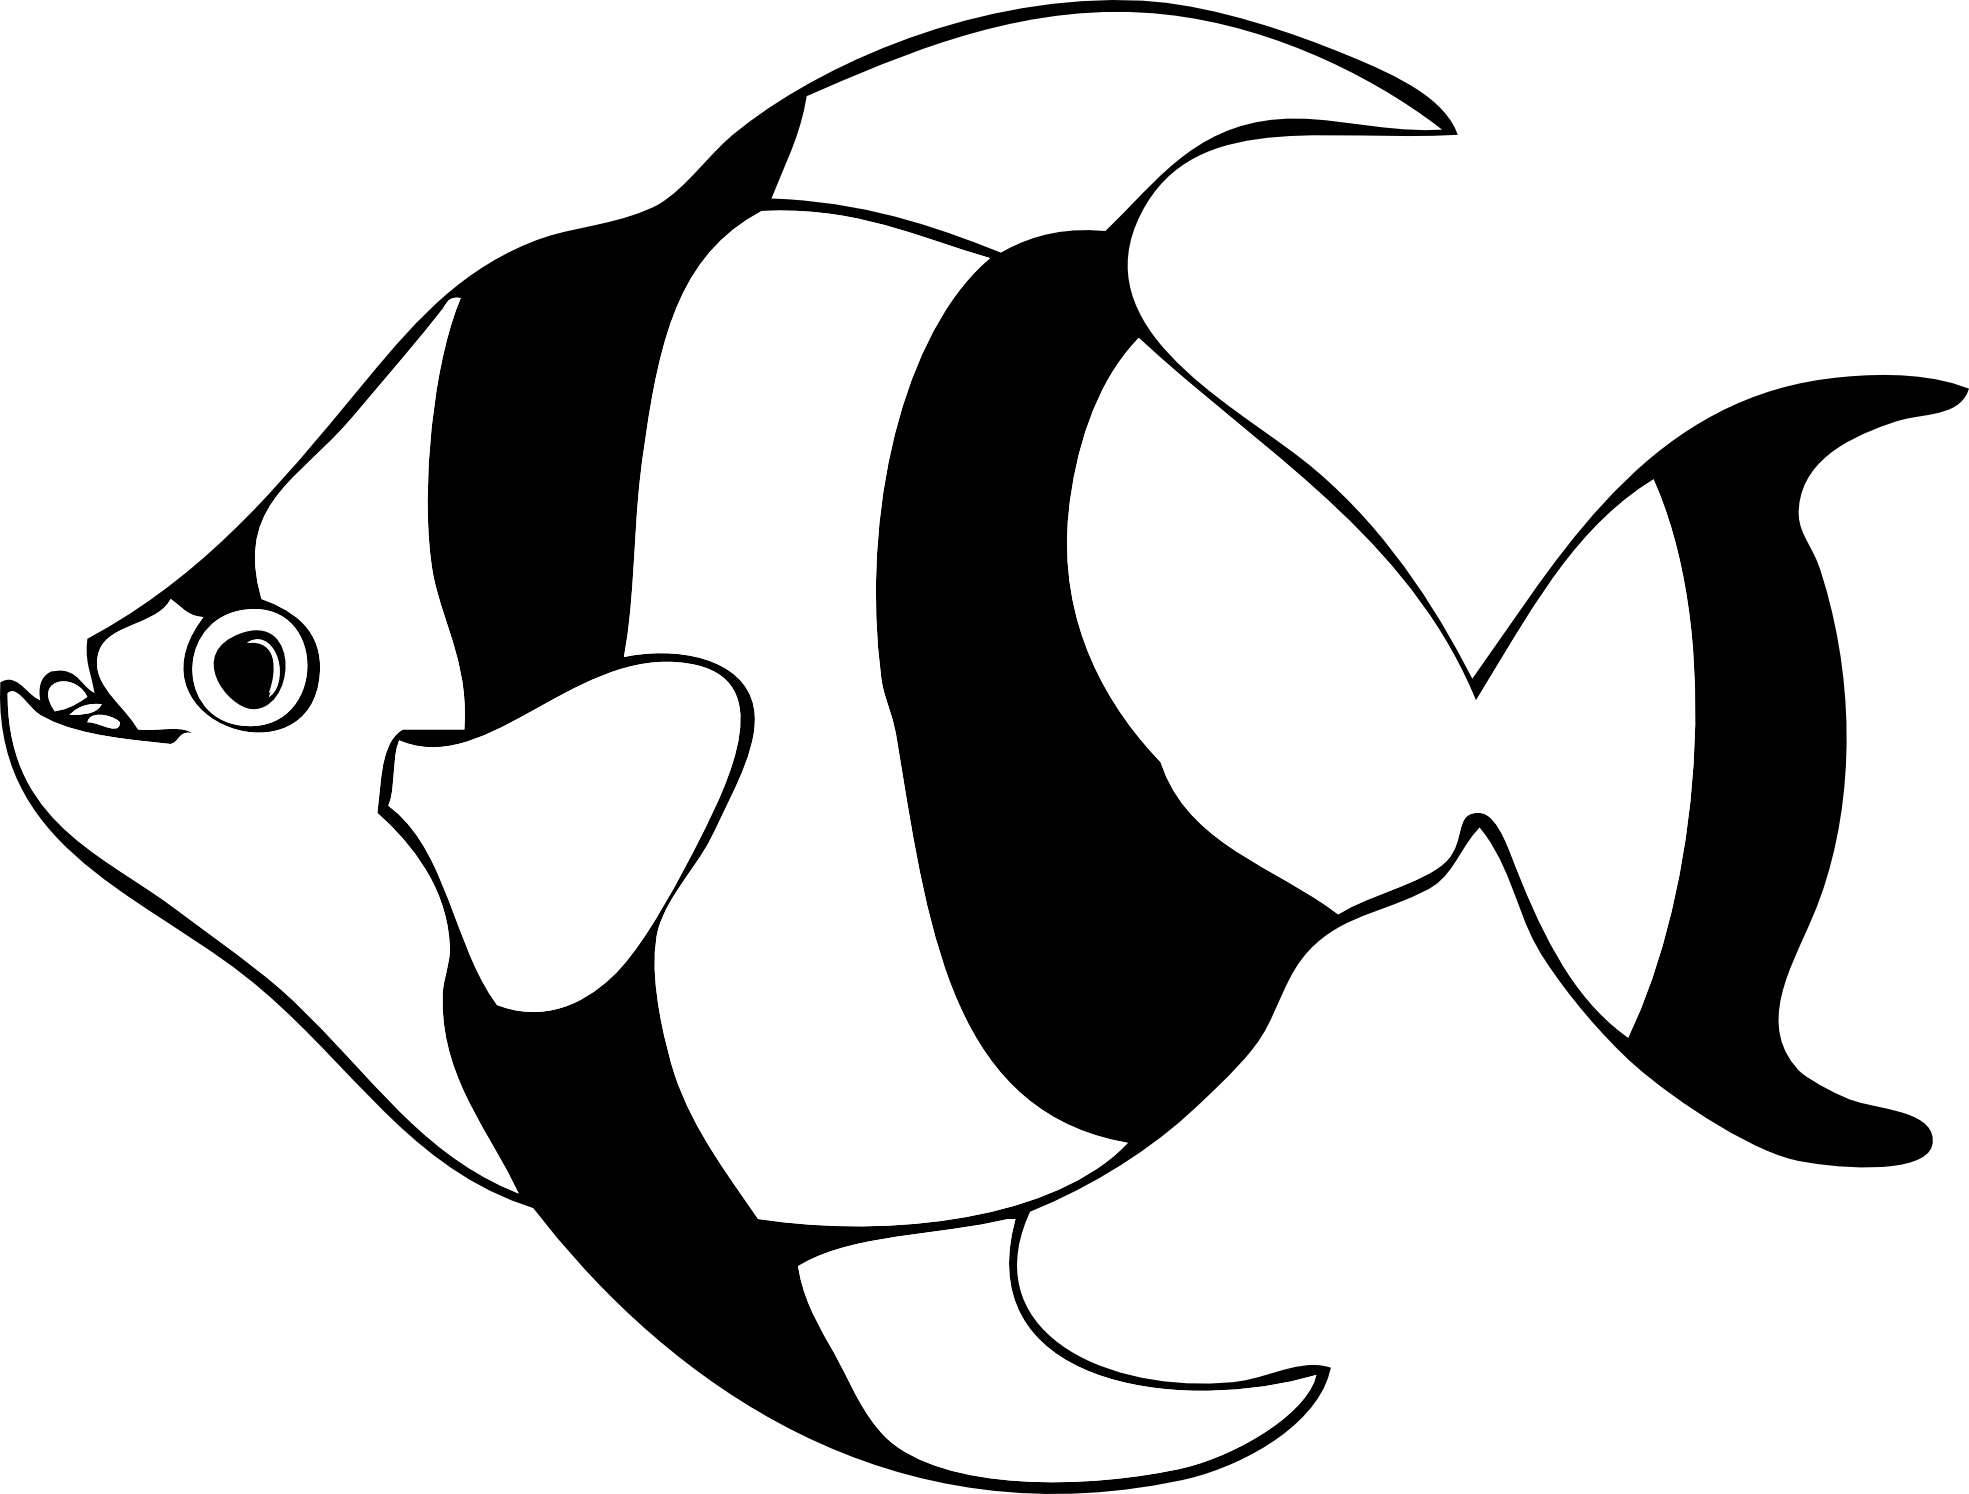 Fish with bubbles clipart black and white graphic freeuse download Image result for clip art black and white fish | applique ideas ... graphic freeuse download